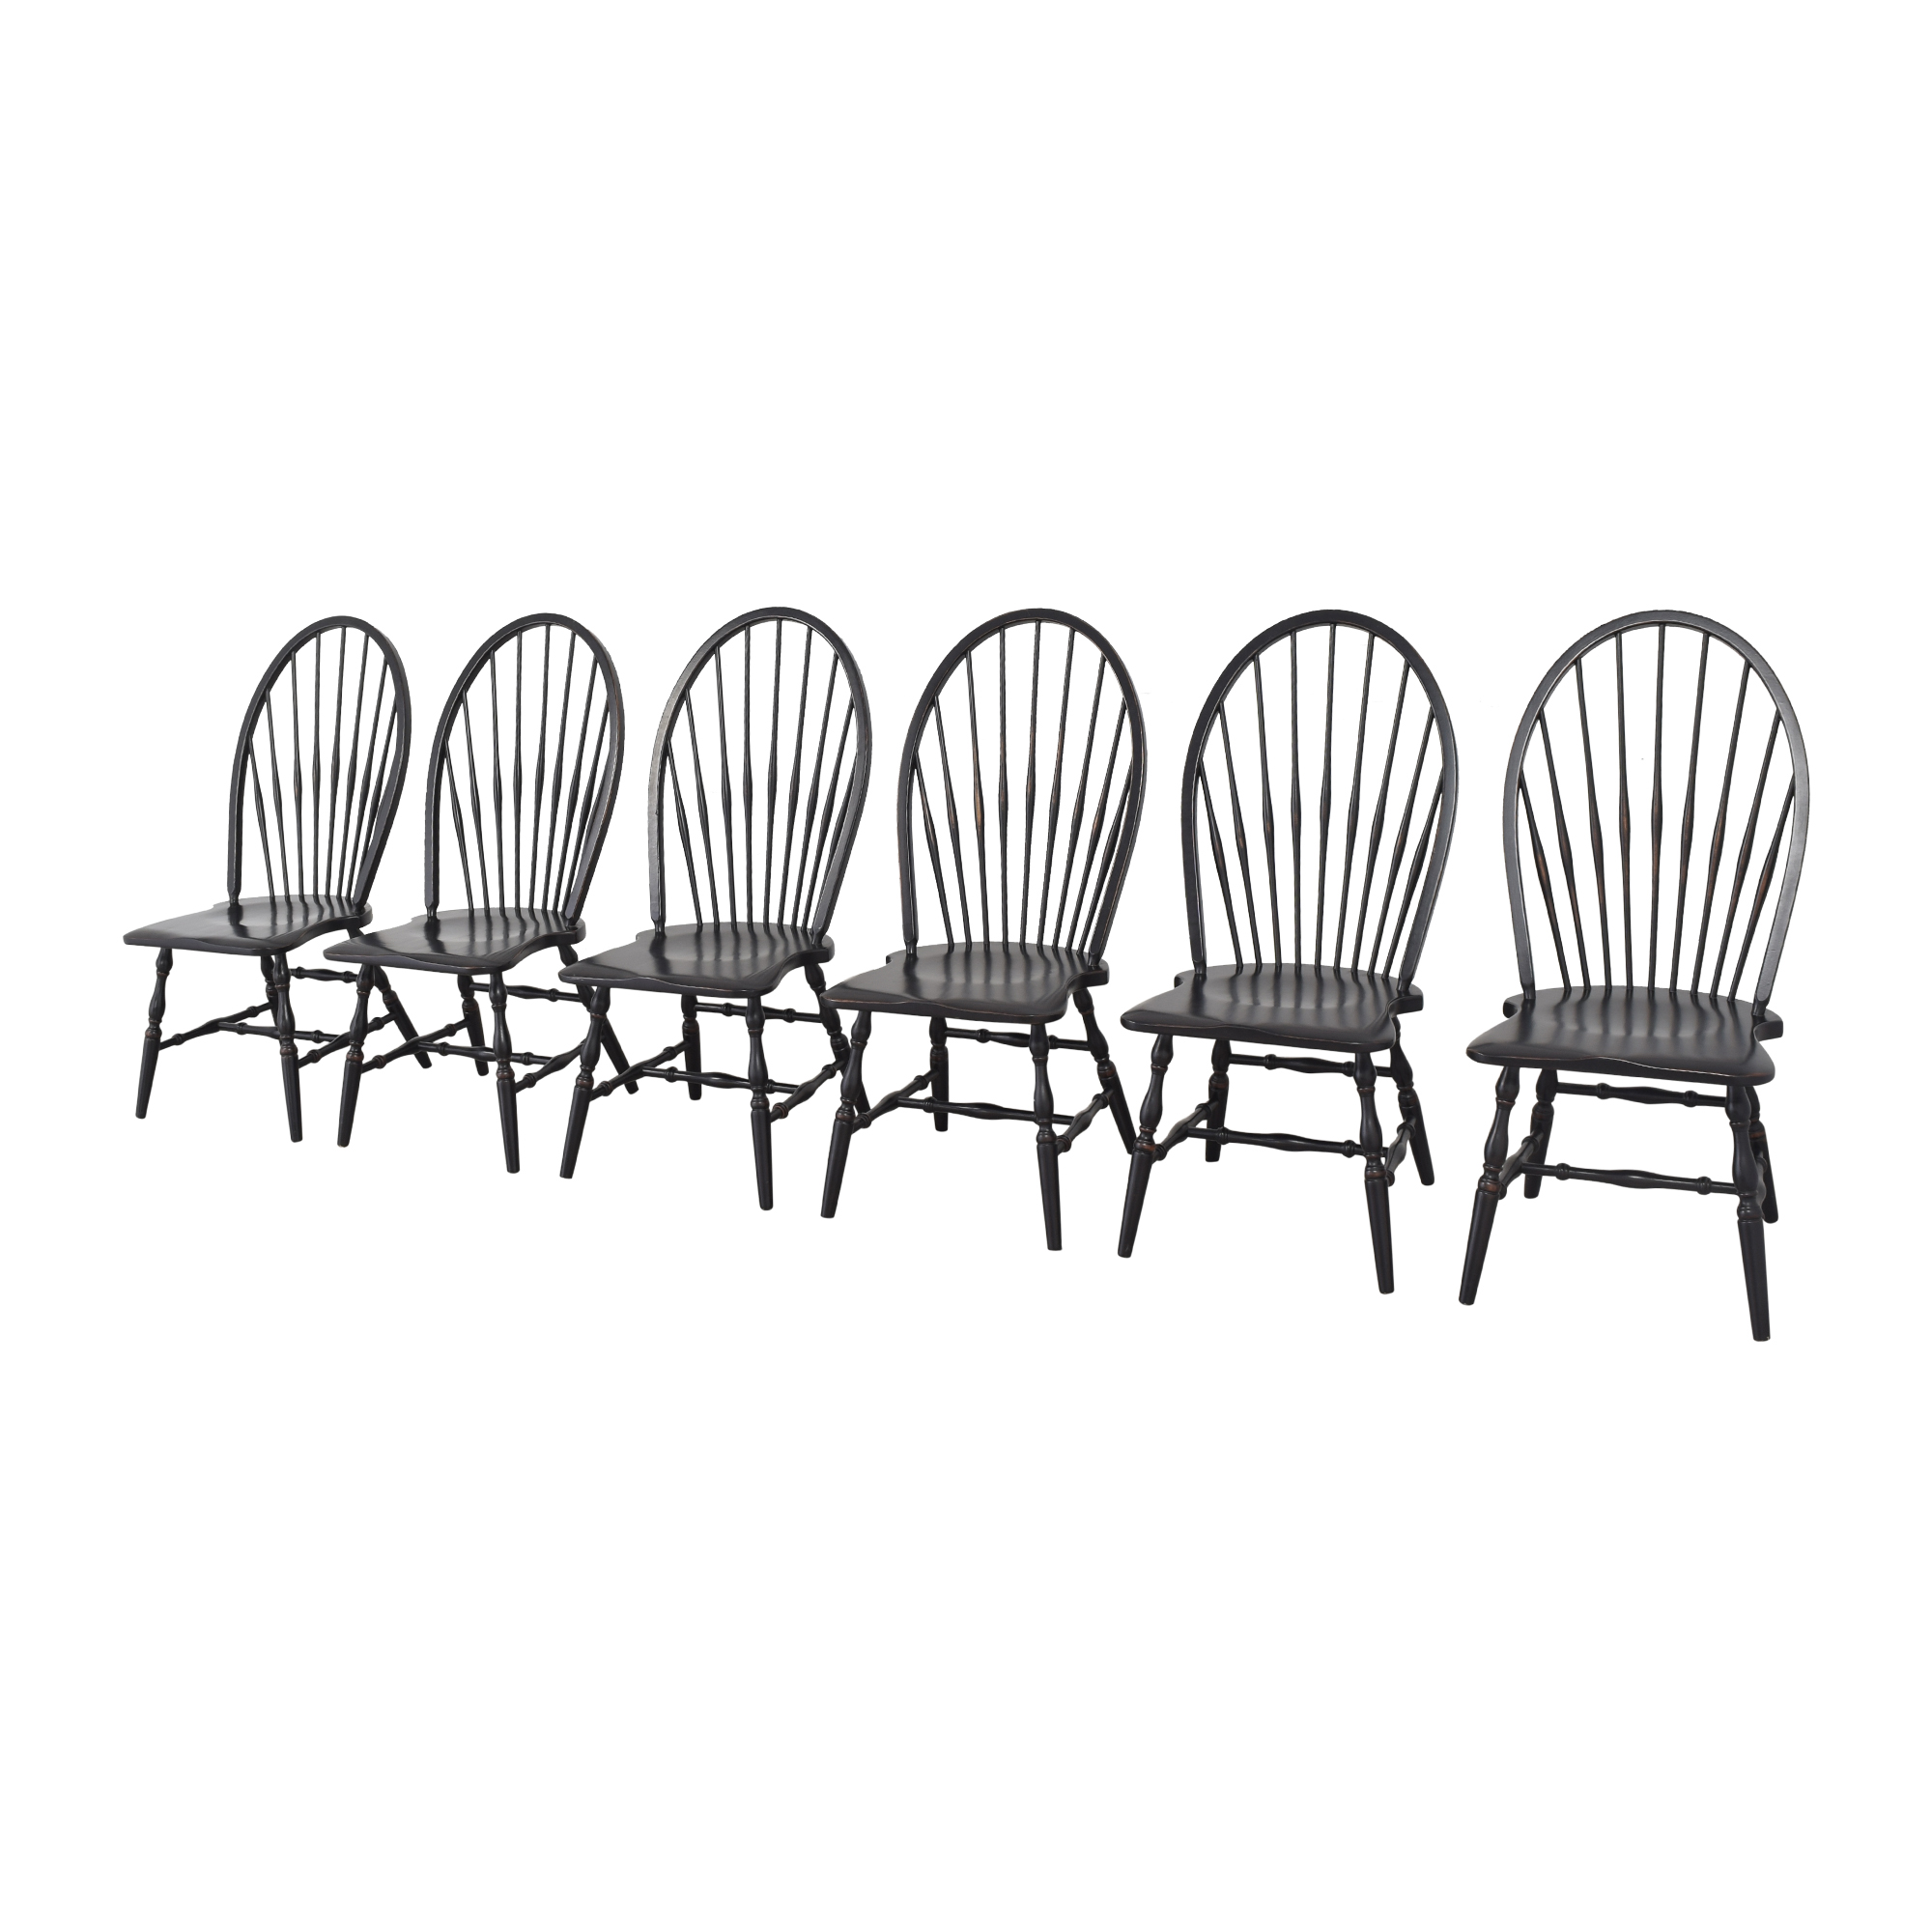 Country Willow Country Willow Windsor Dining Chairs price